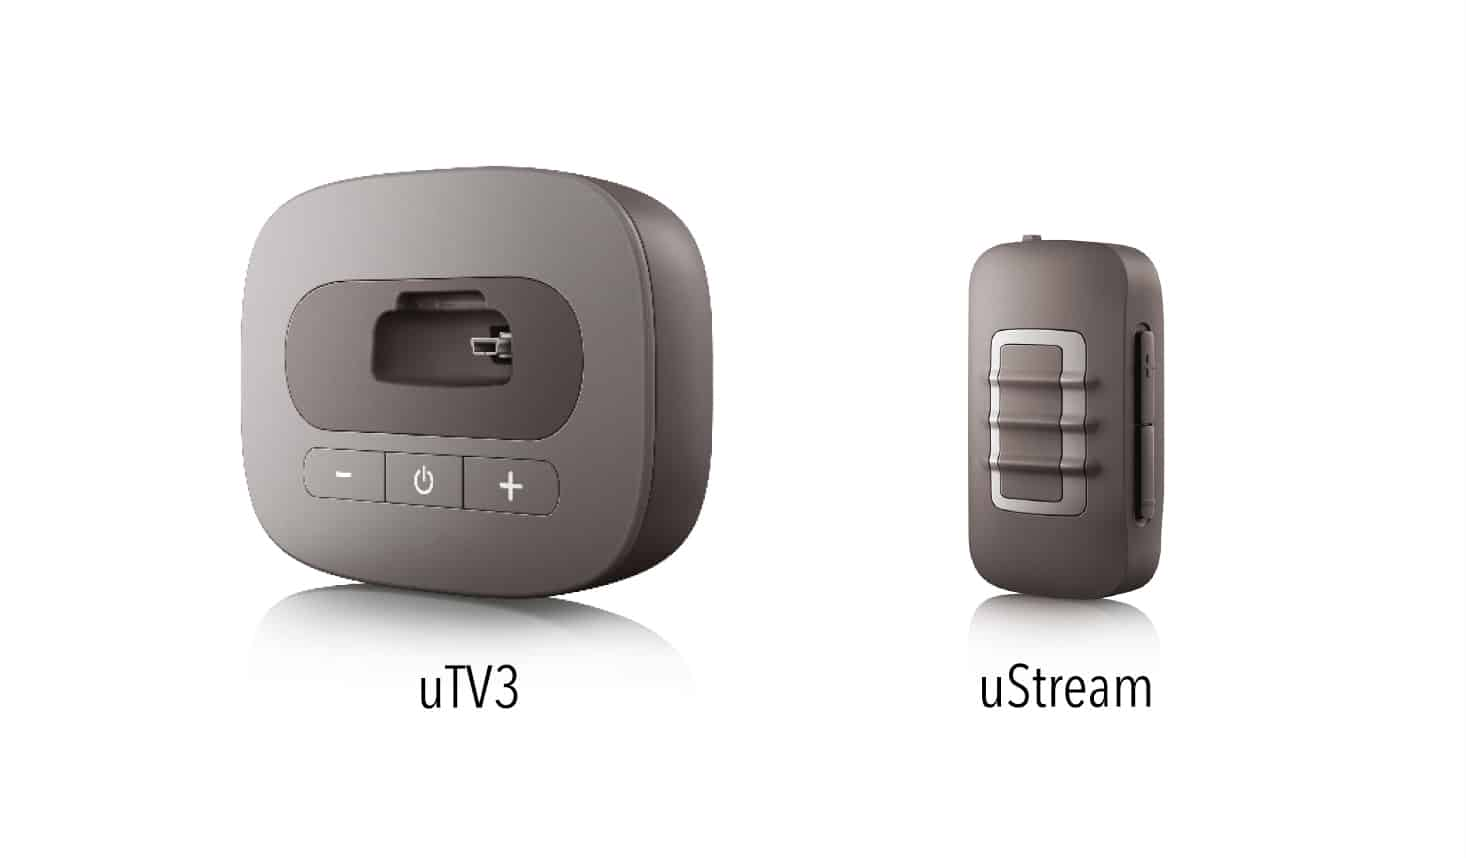 uTV3 and uStream Special Deal Hearing Aid Accessories